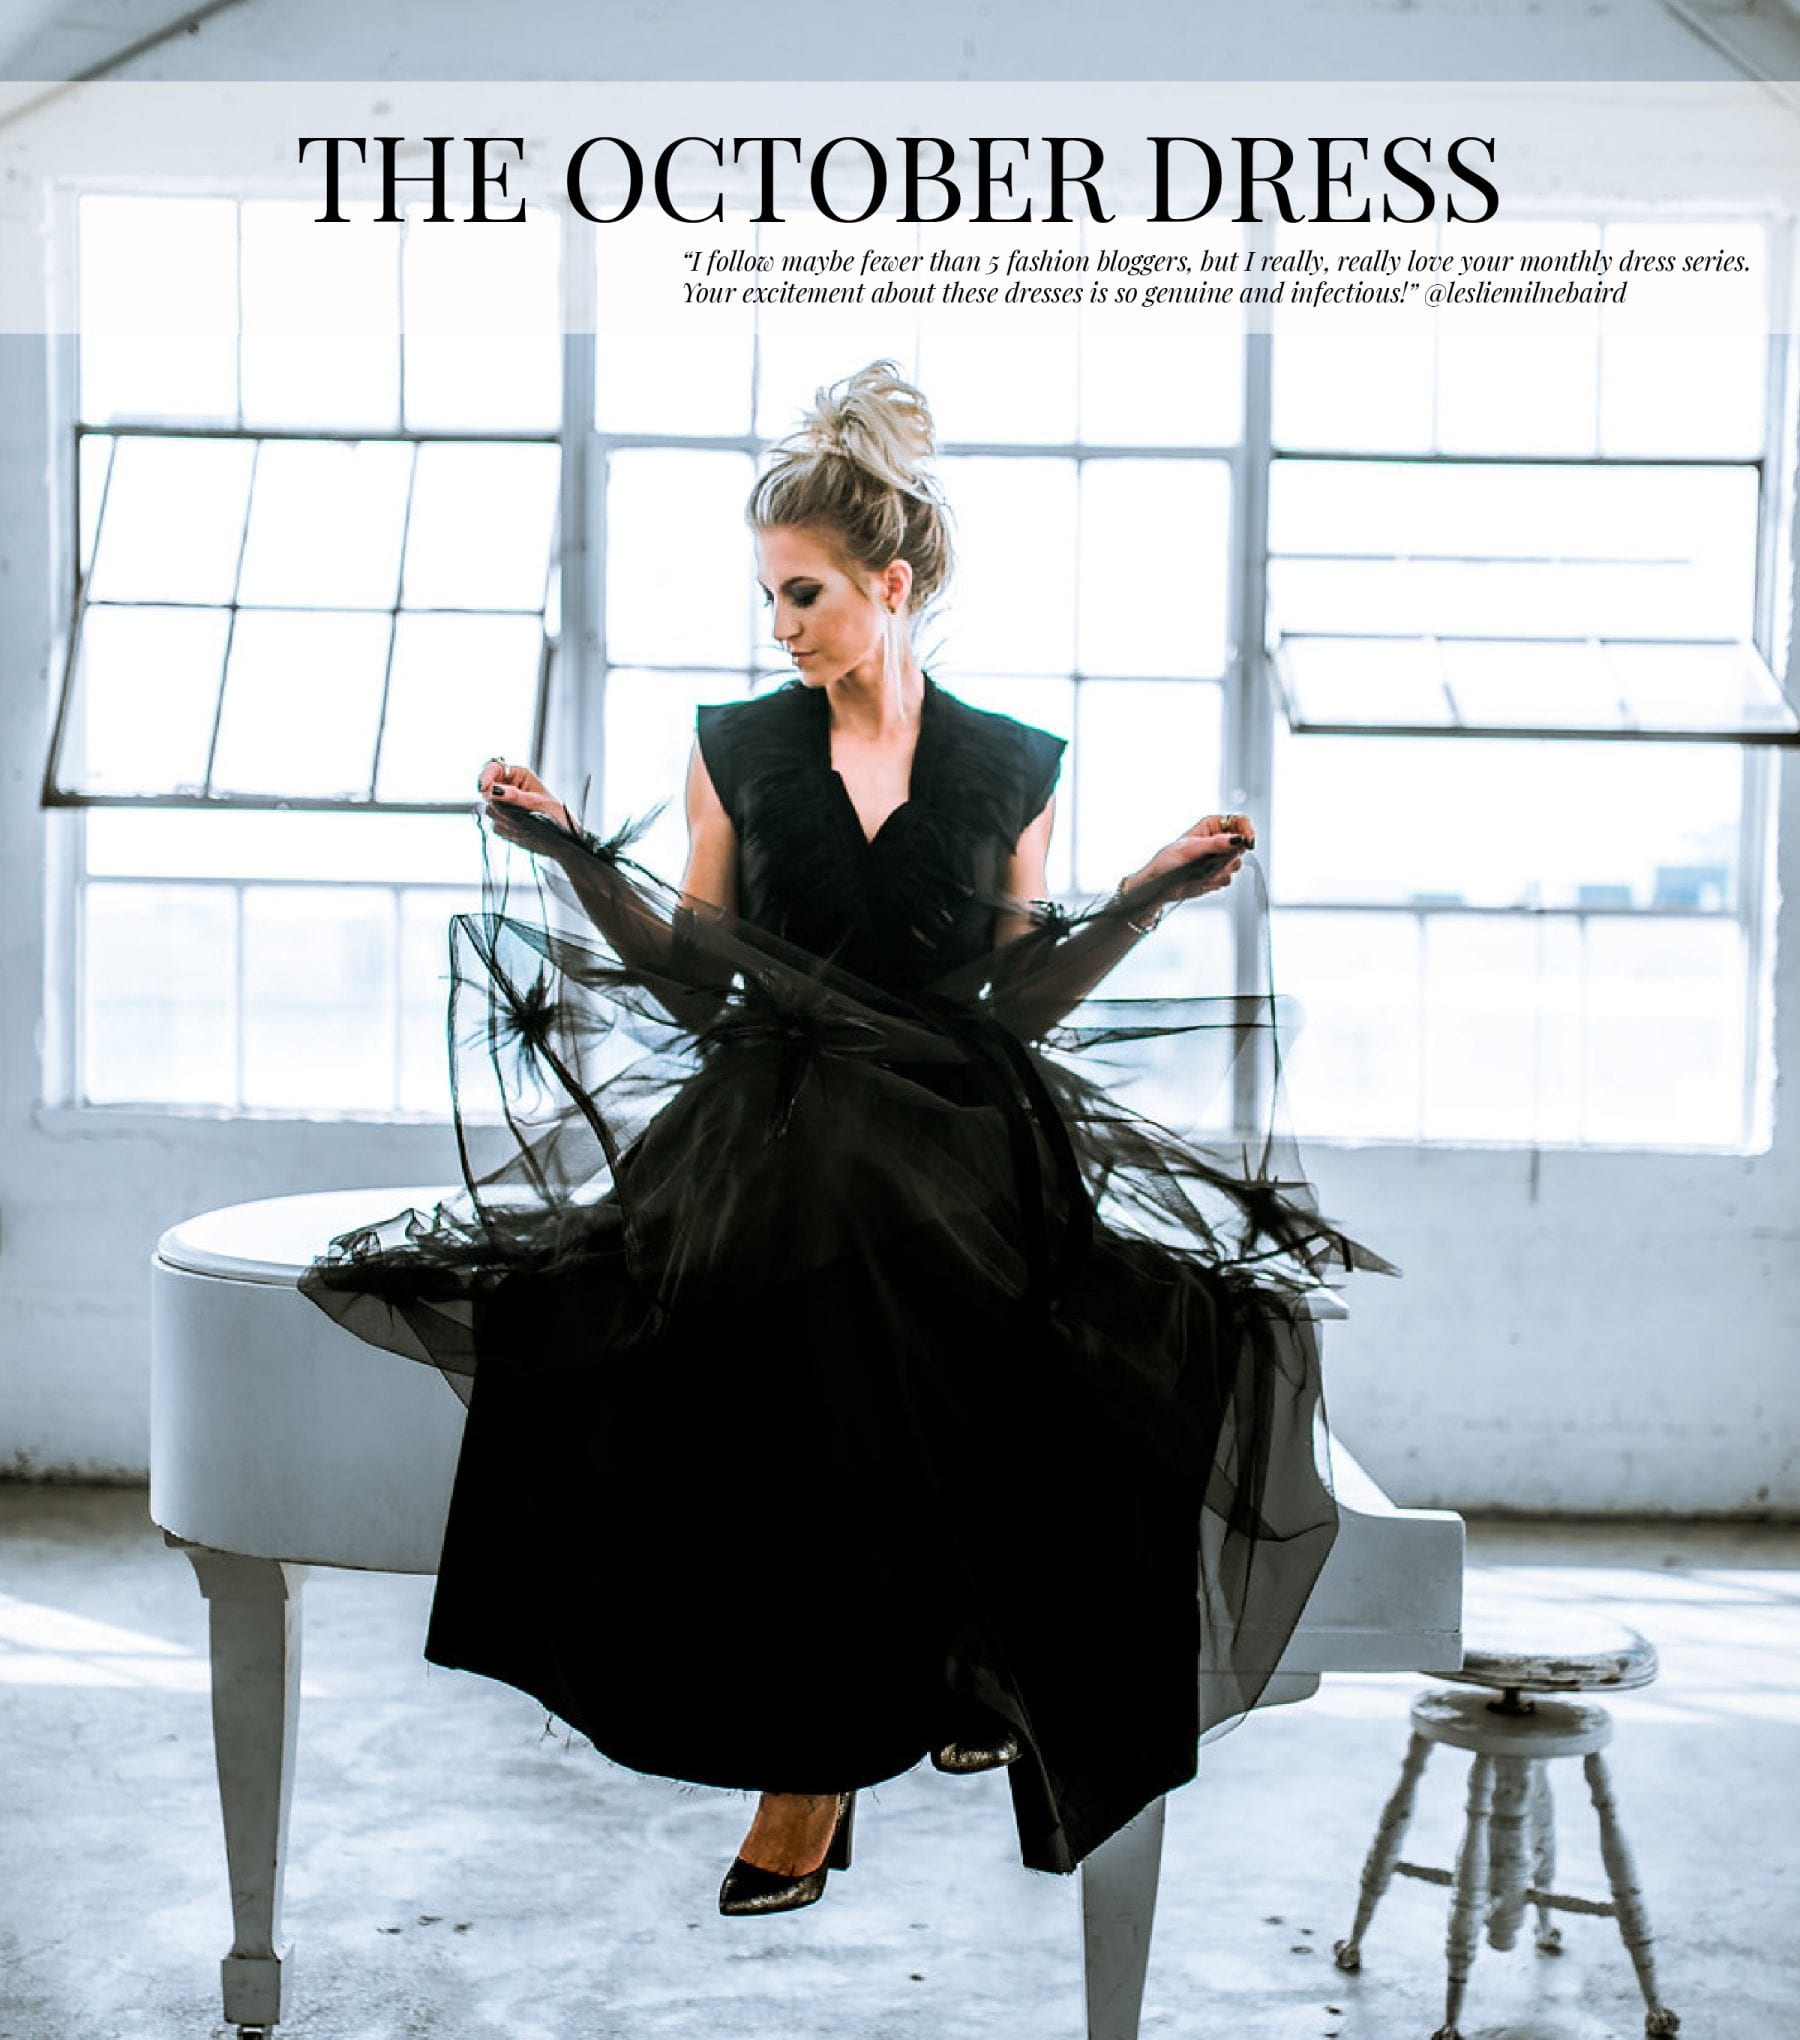 The October Dress_The Monthly Dress Series-01